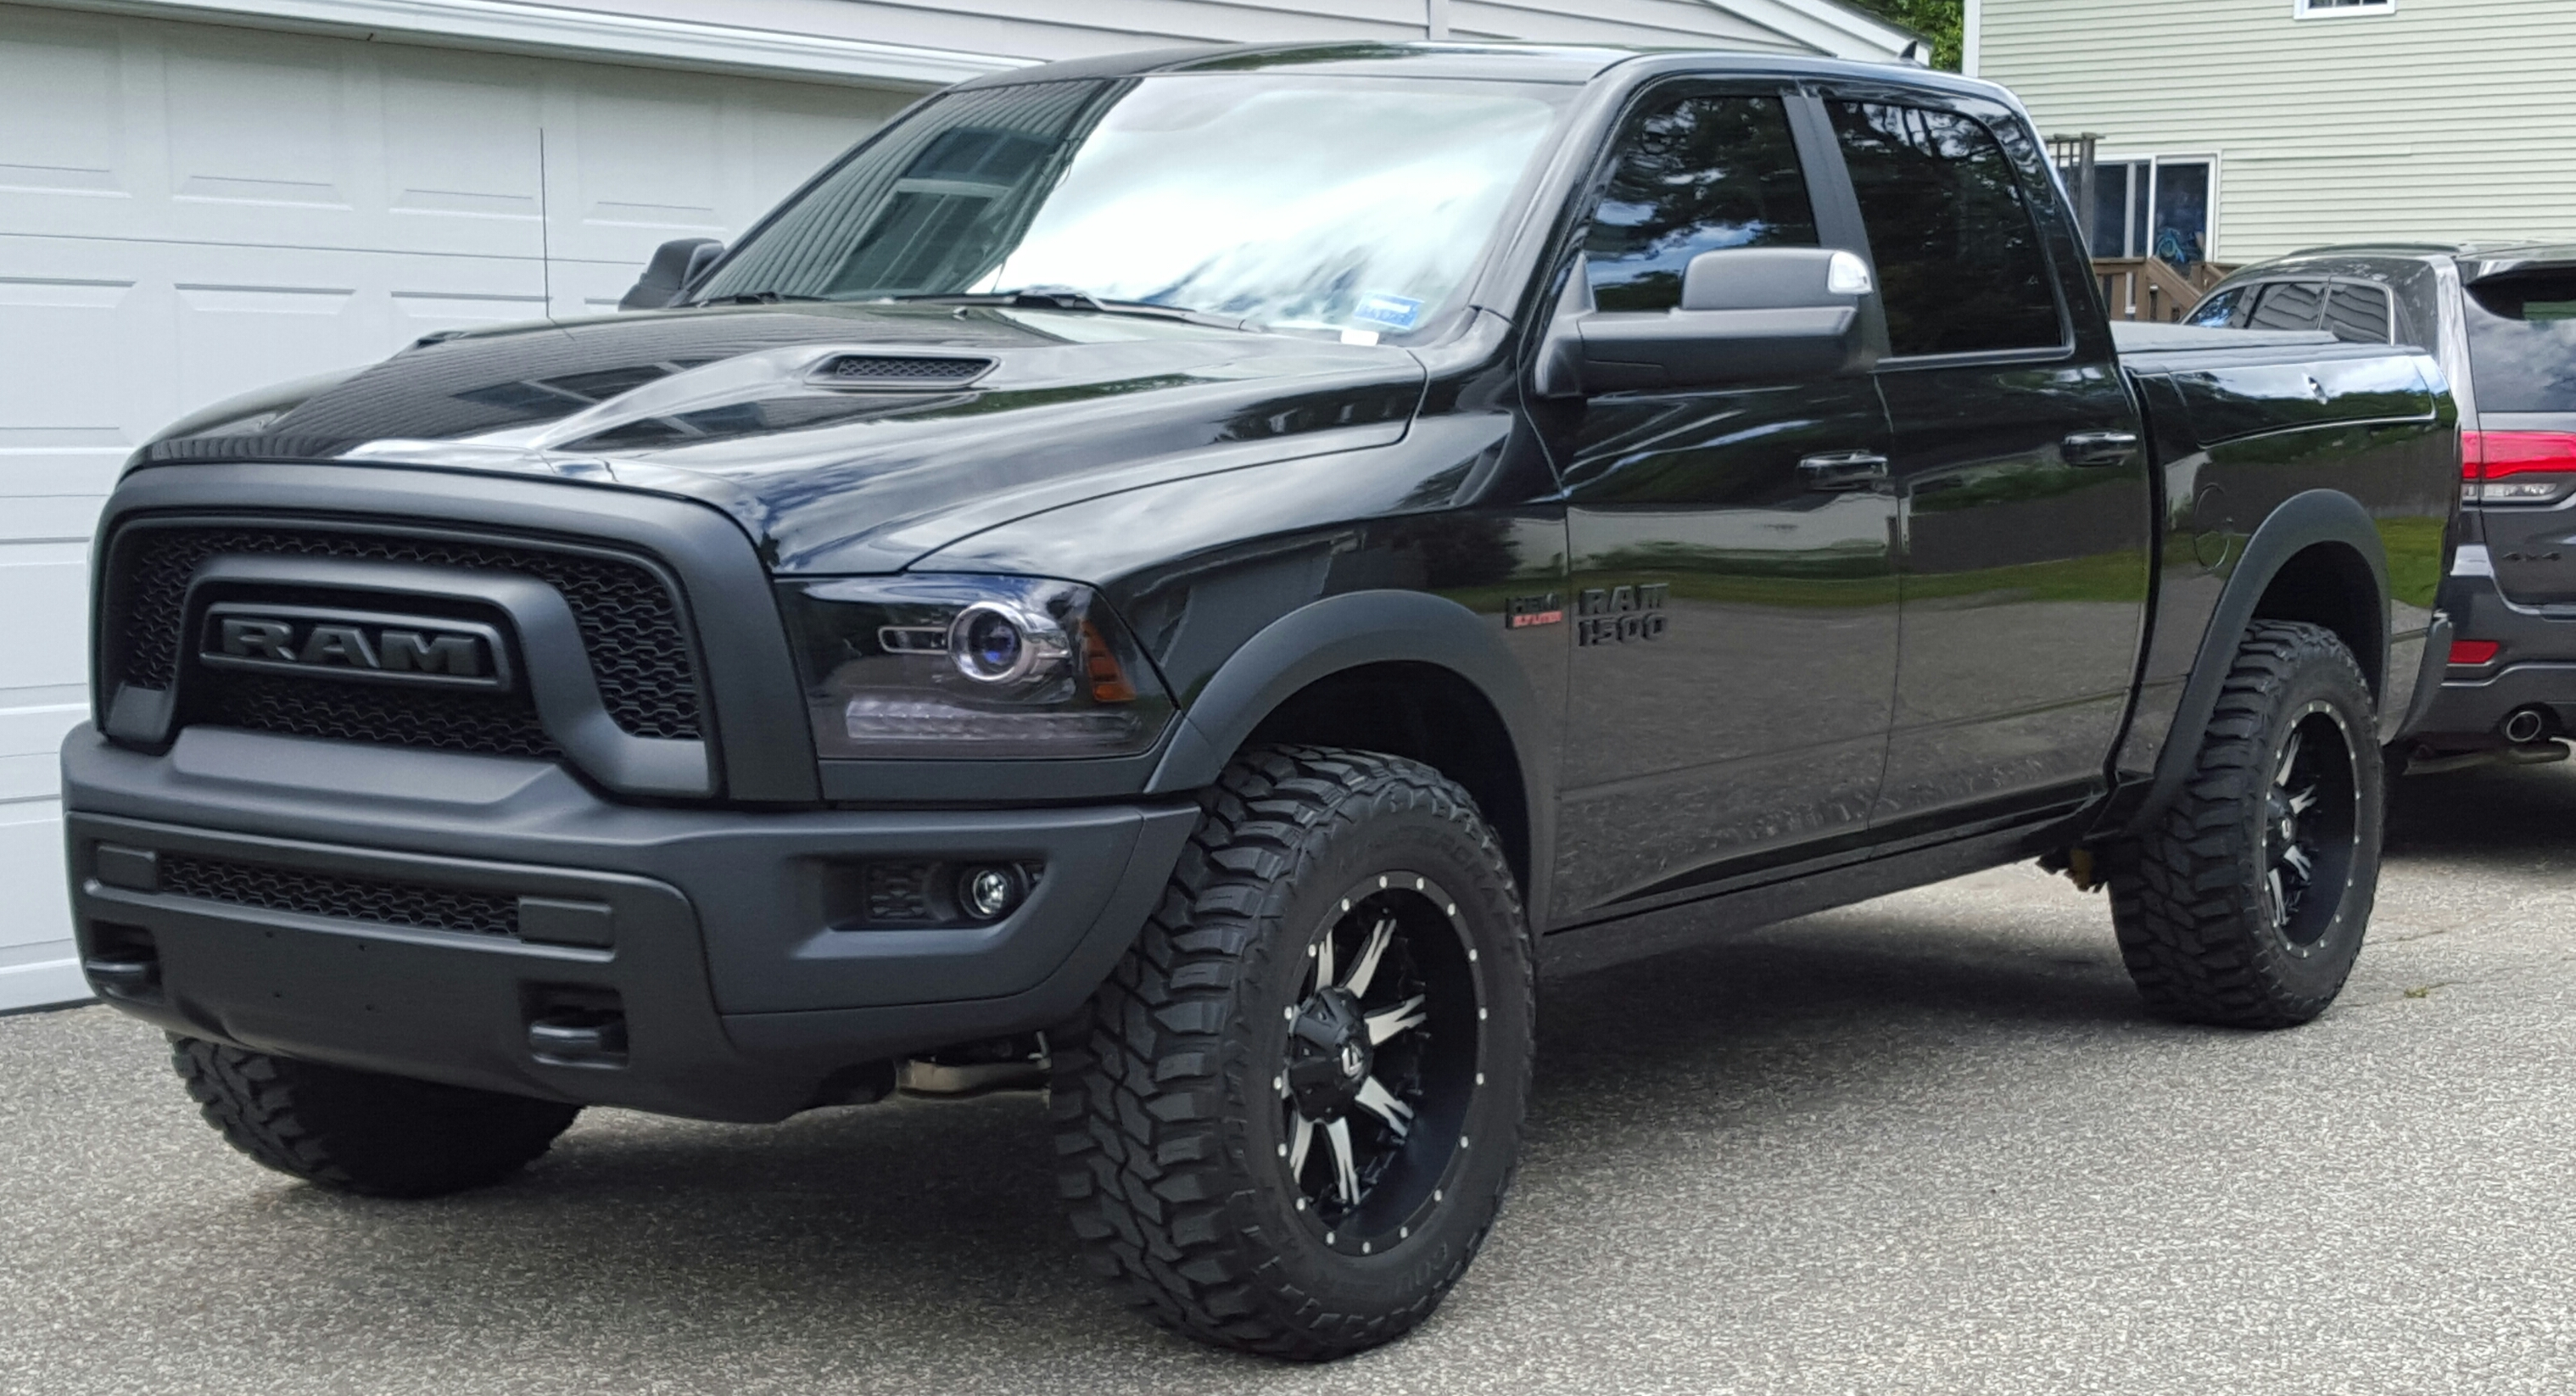 Blacked Out Ram >> Blacked Out A Few More Things Ram Rebel Forum